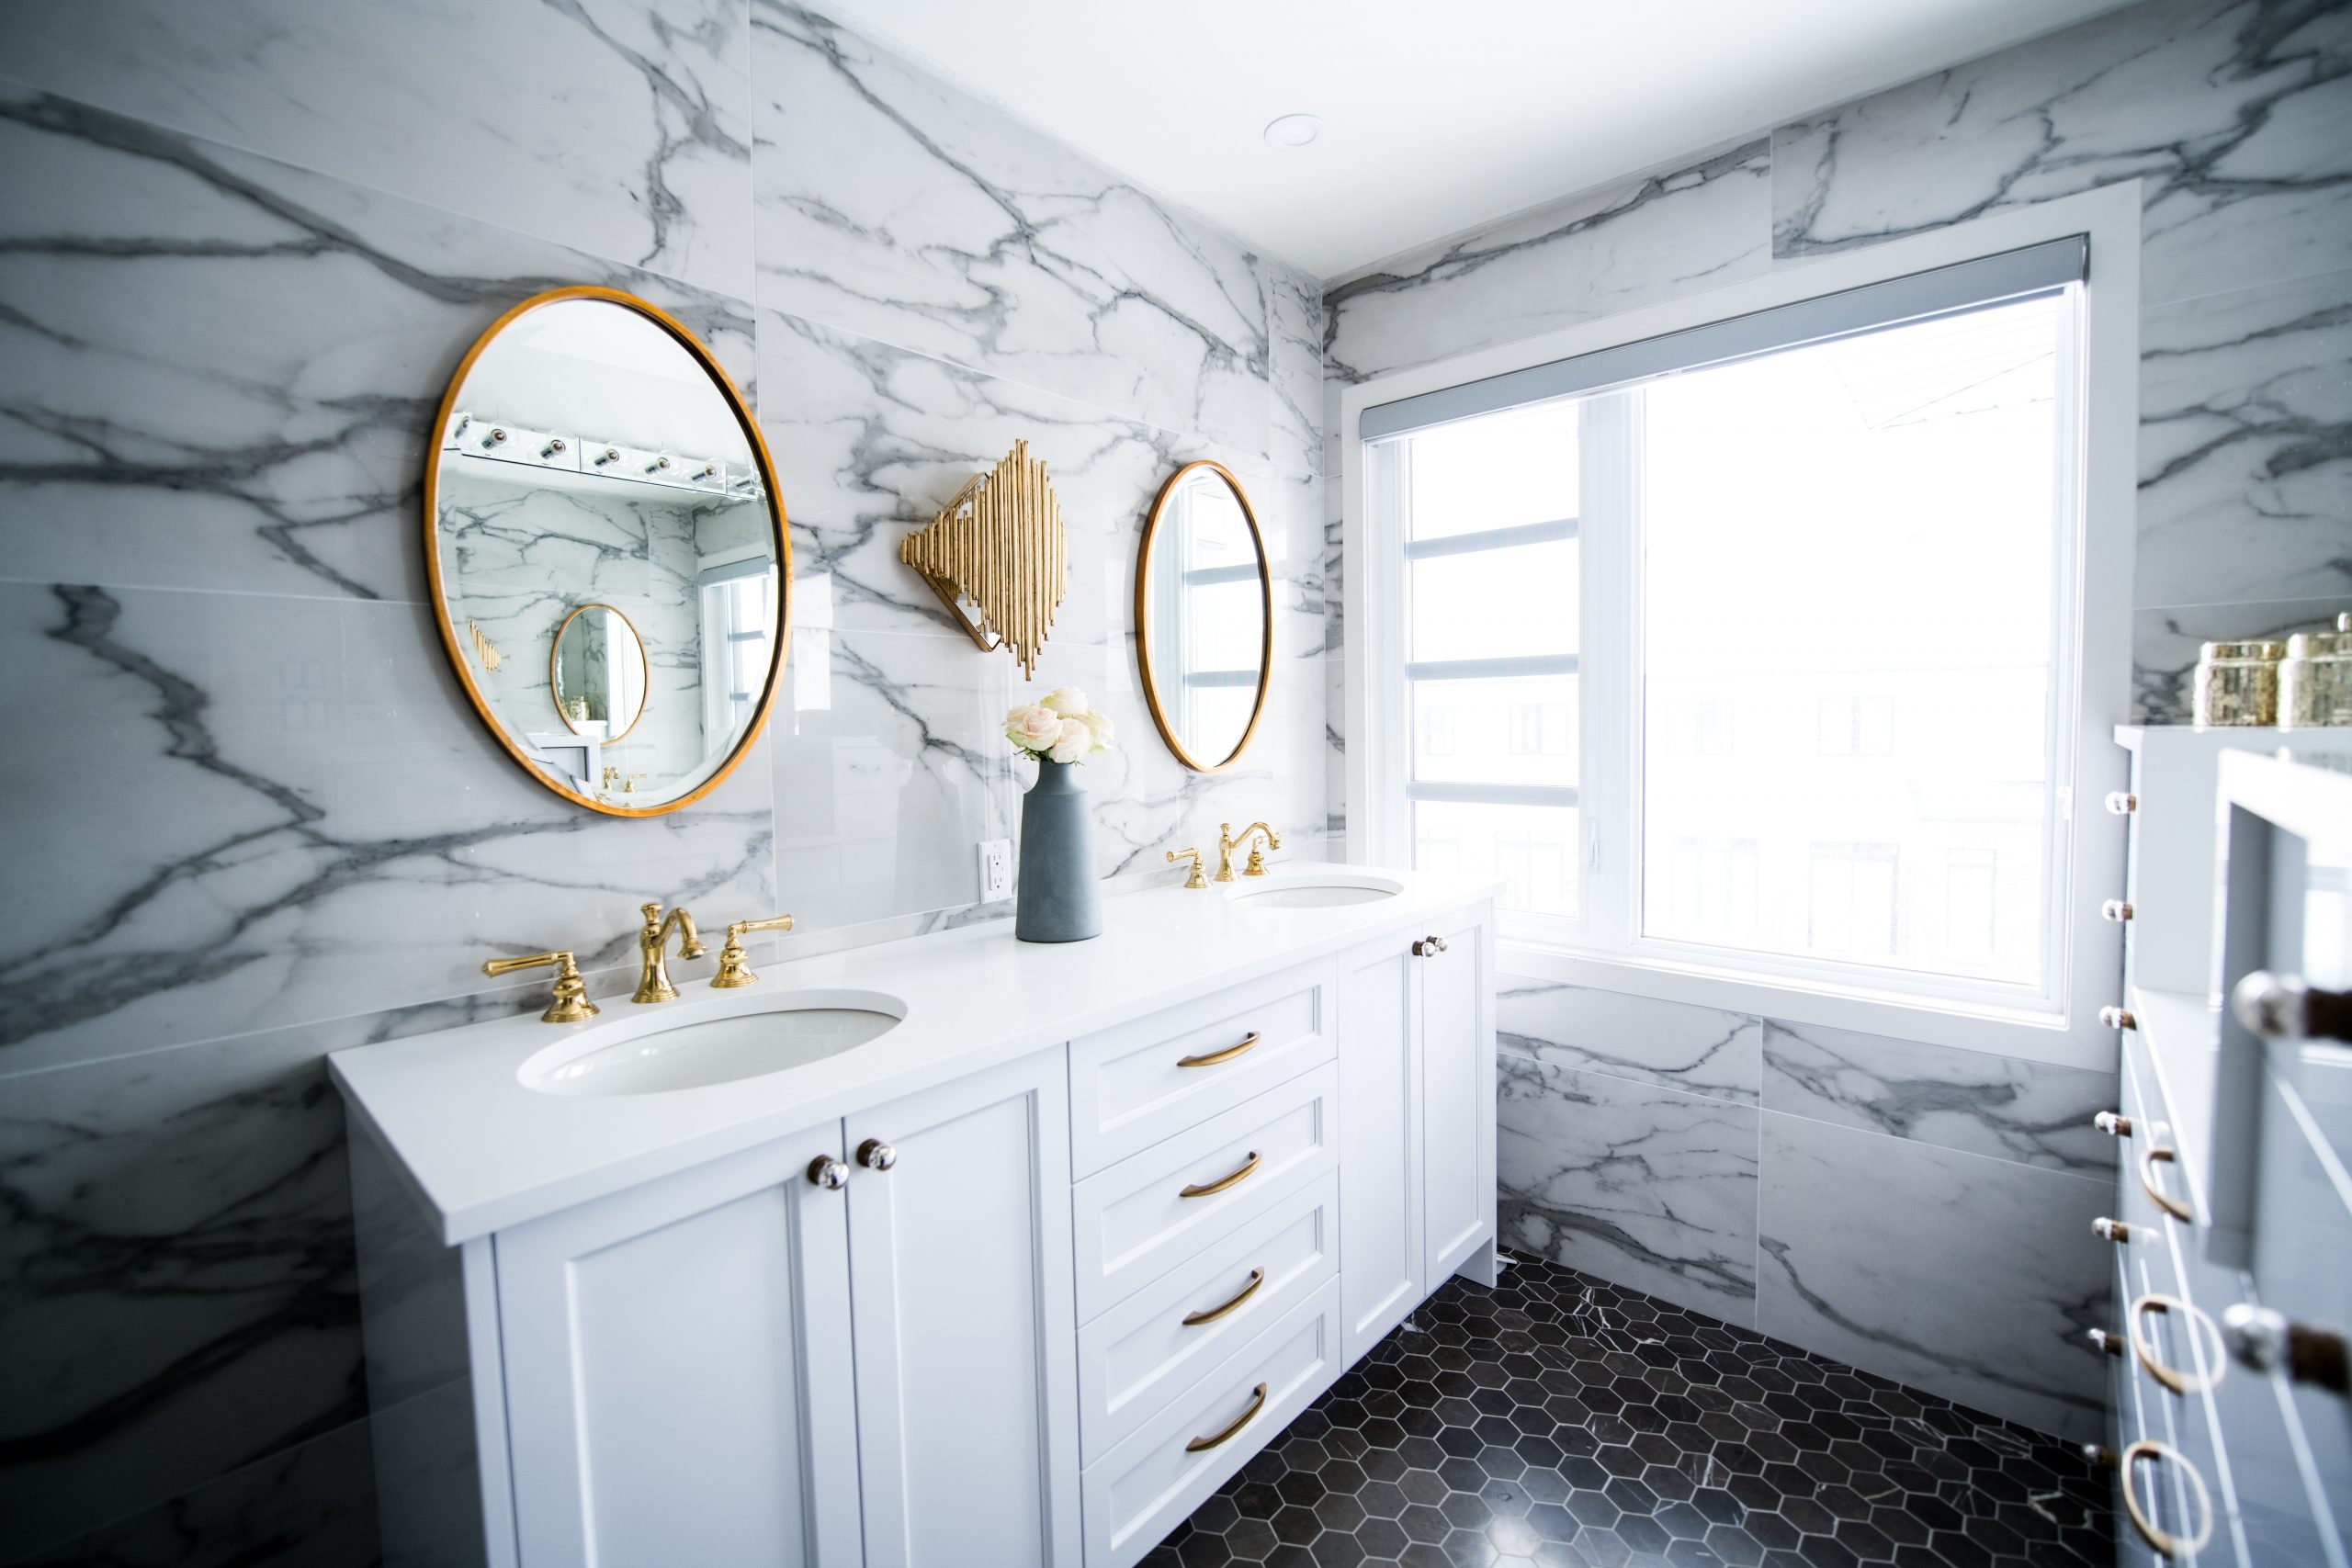 5 mistakes to avoid during your bathroom remodel